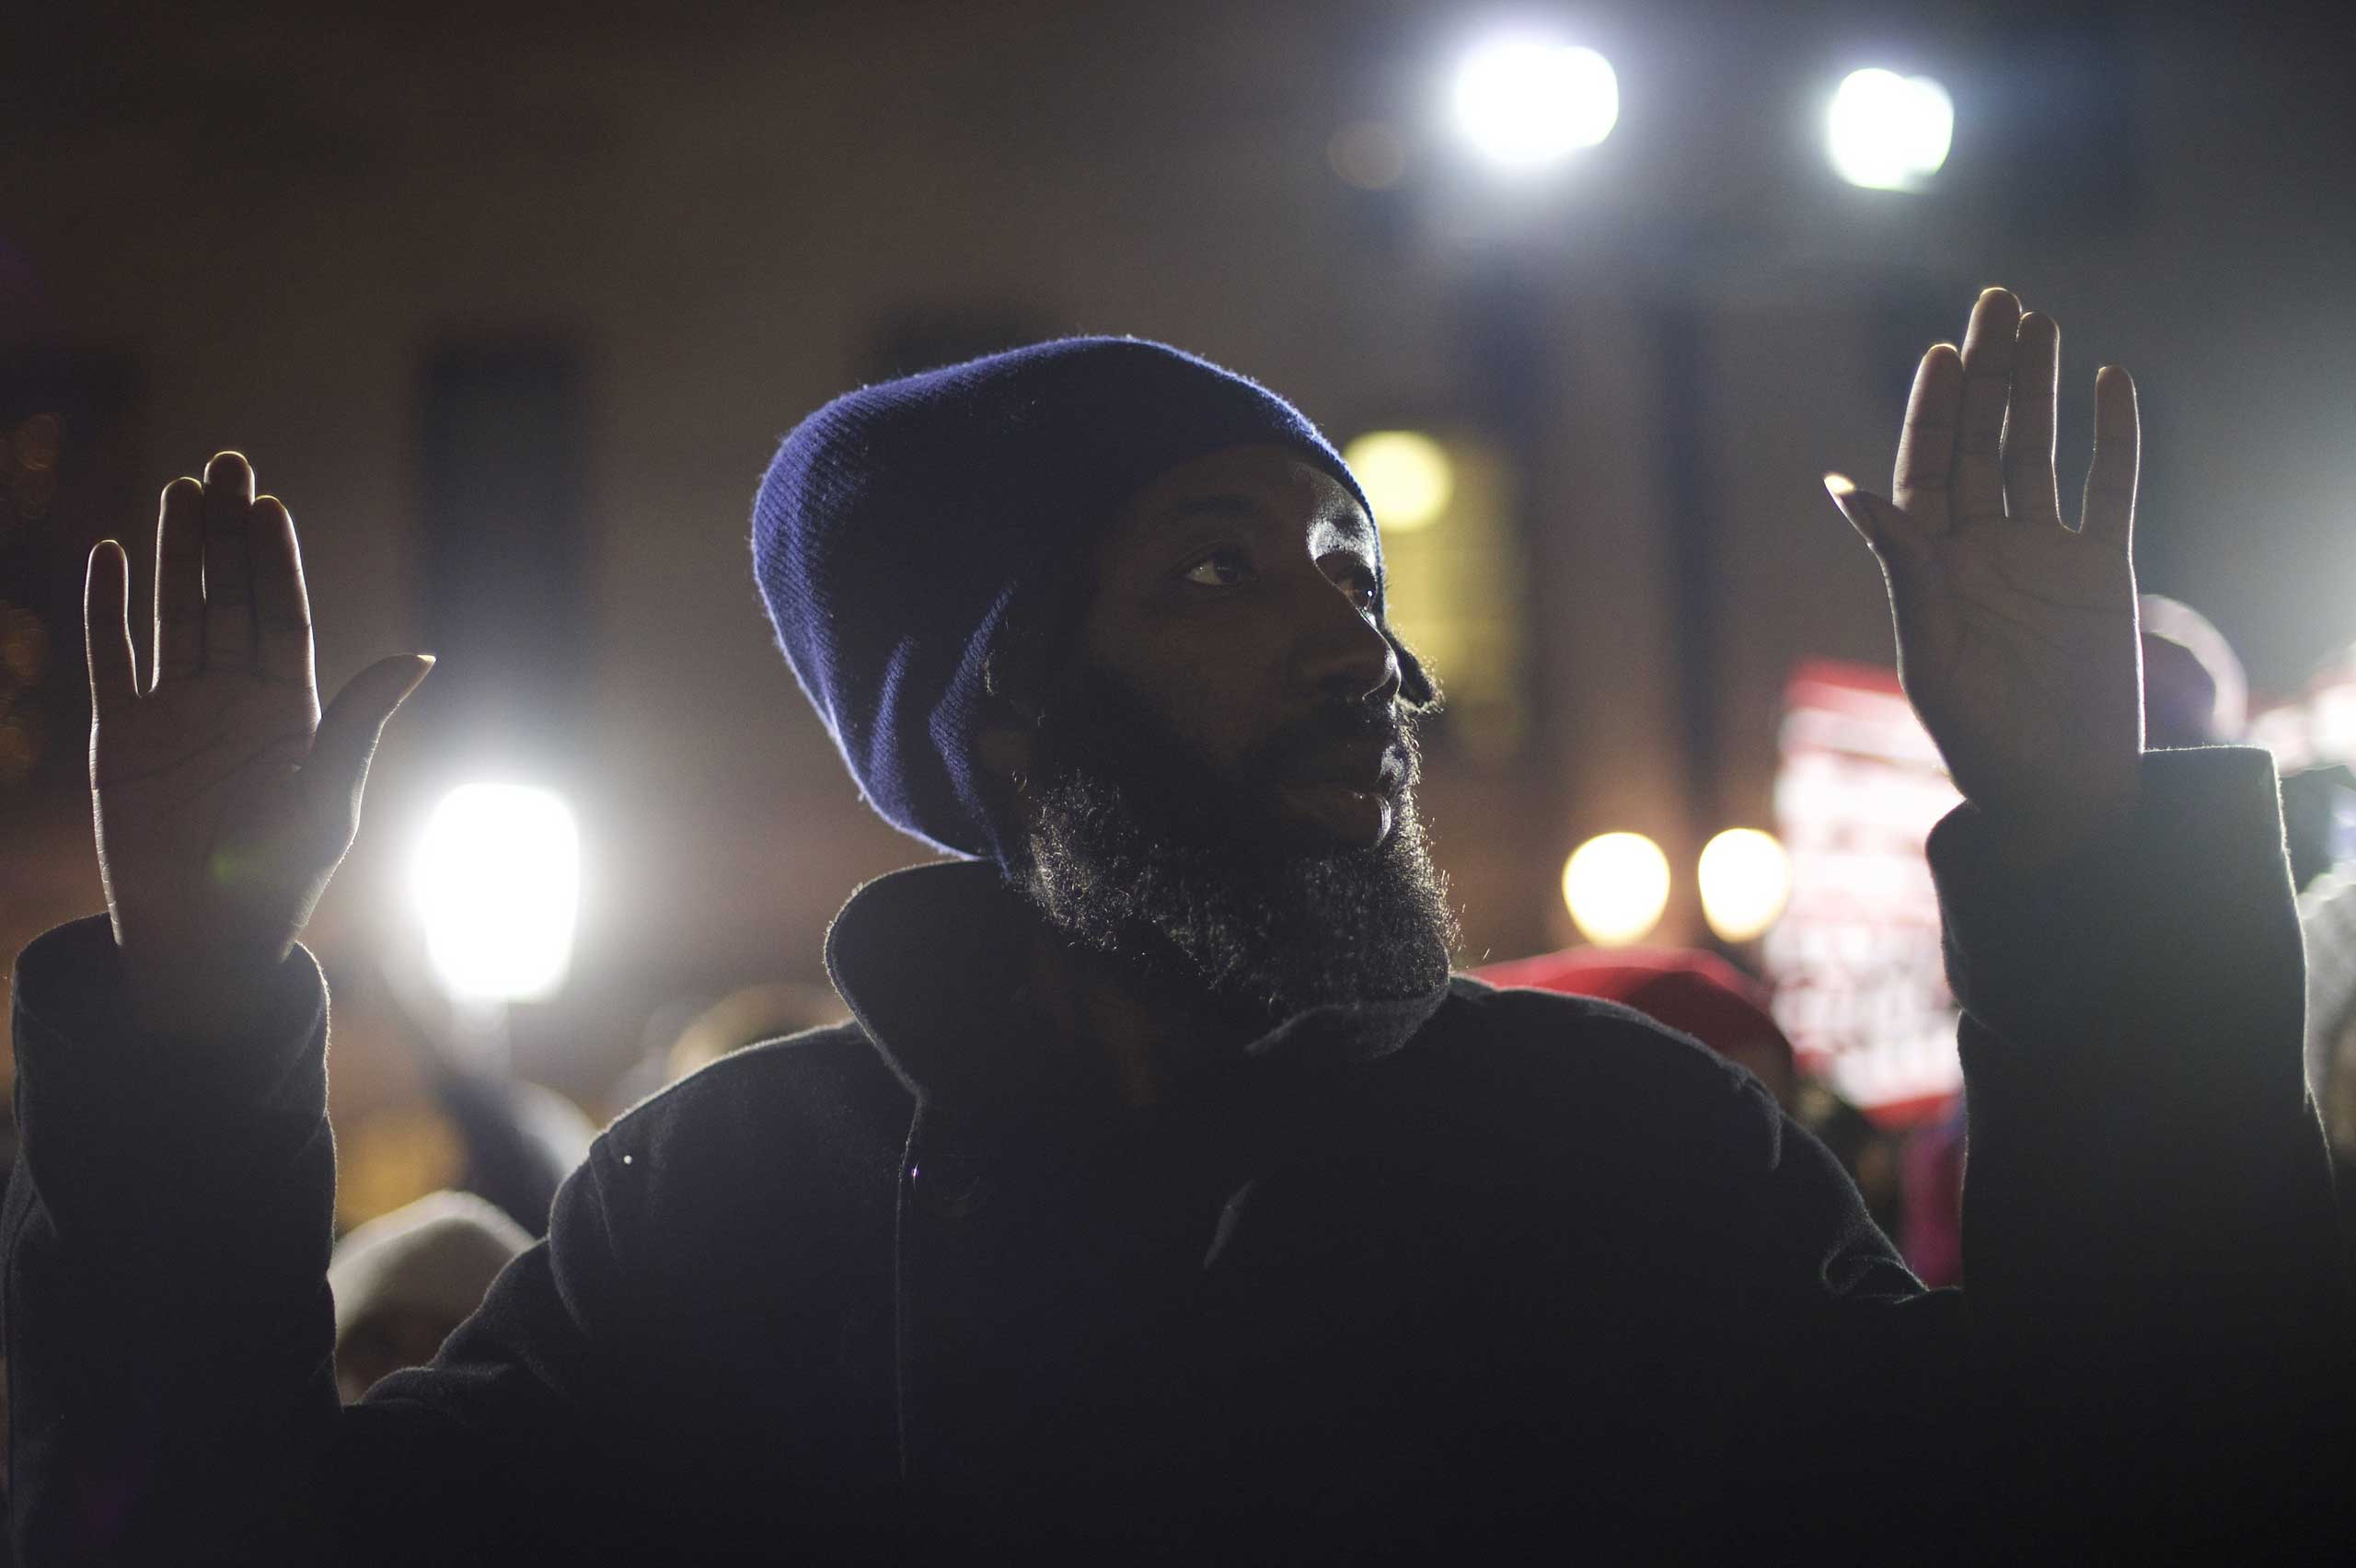 Anwar Thurston, 36, joined demonstrators who gathered to protest the Eric Garner grand jury decision during a Christmas Tree lighting ceremony at City Hall in Philadelphia on Dec. 3, 2014.